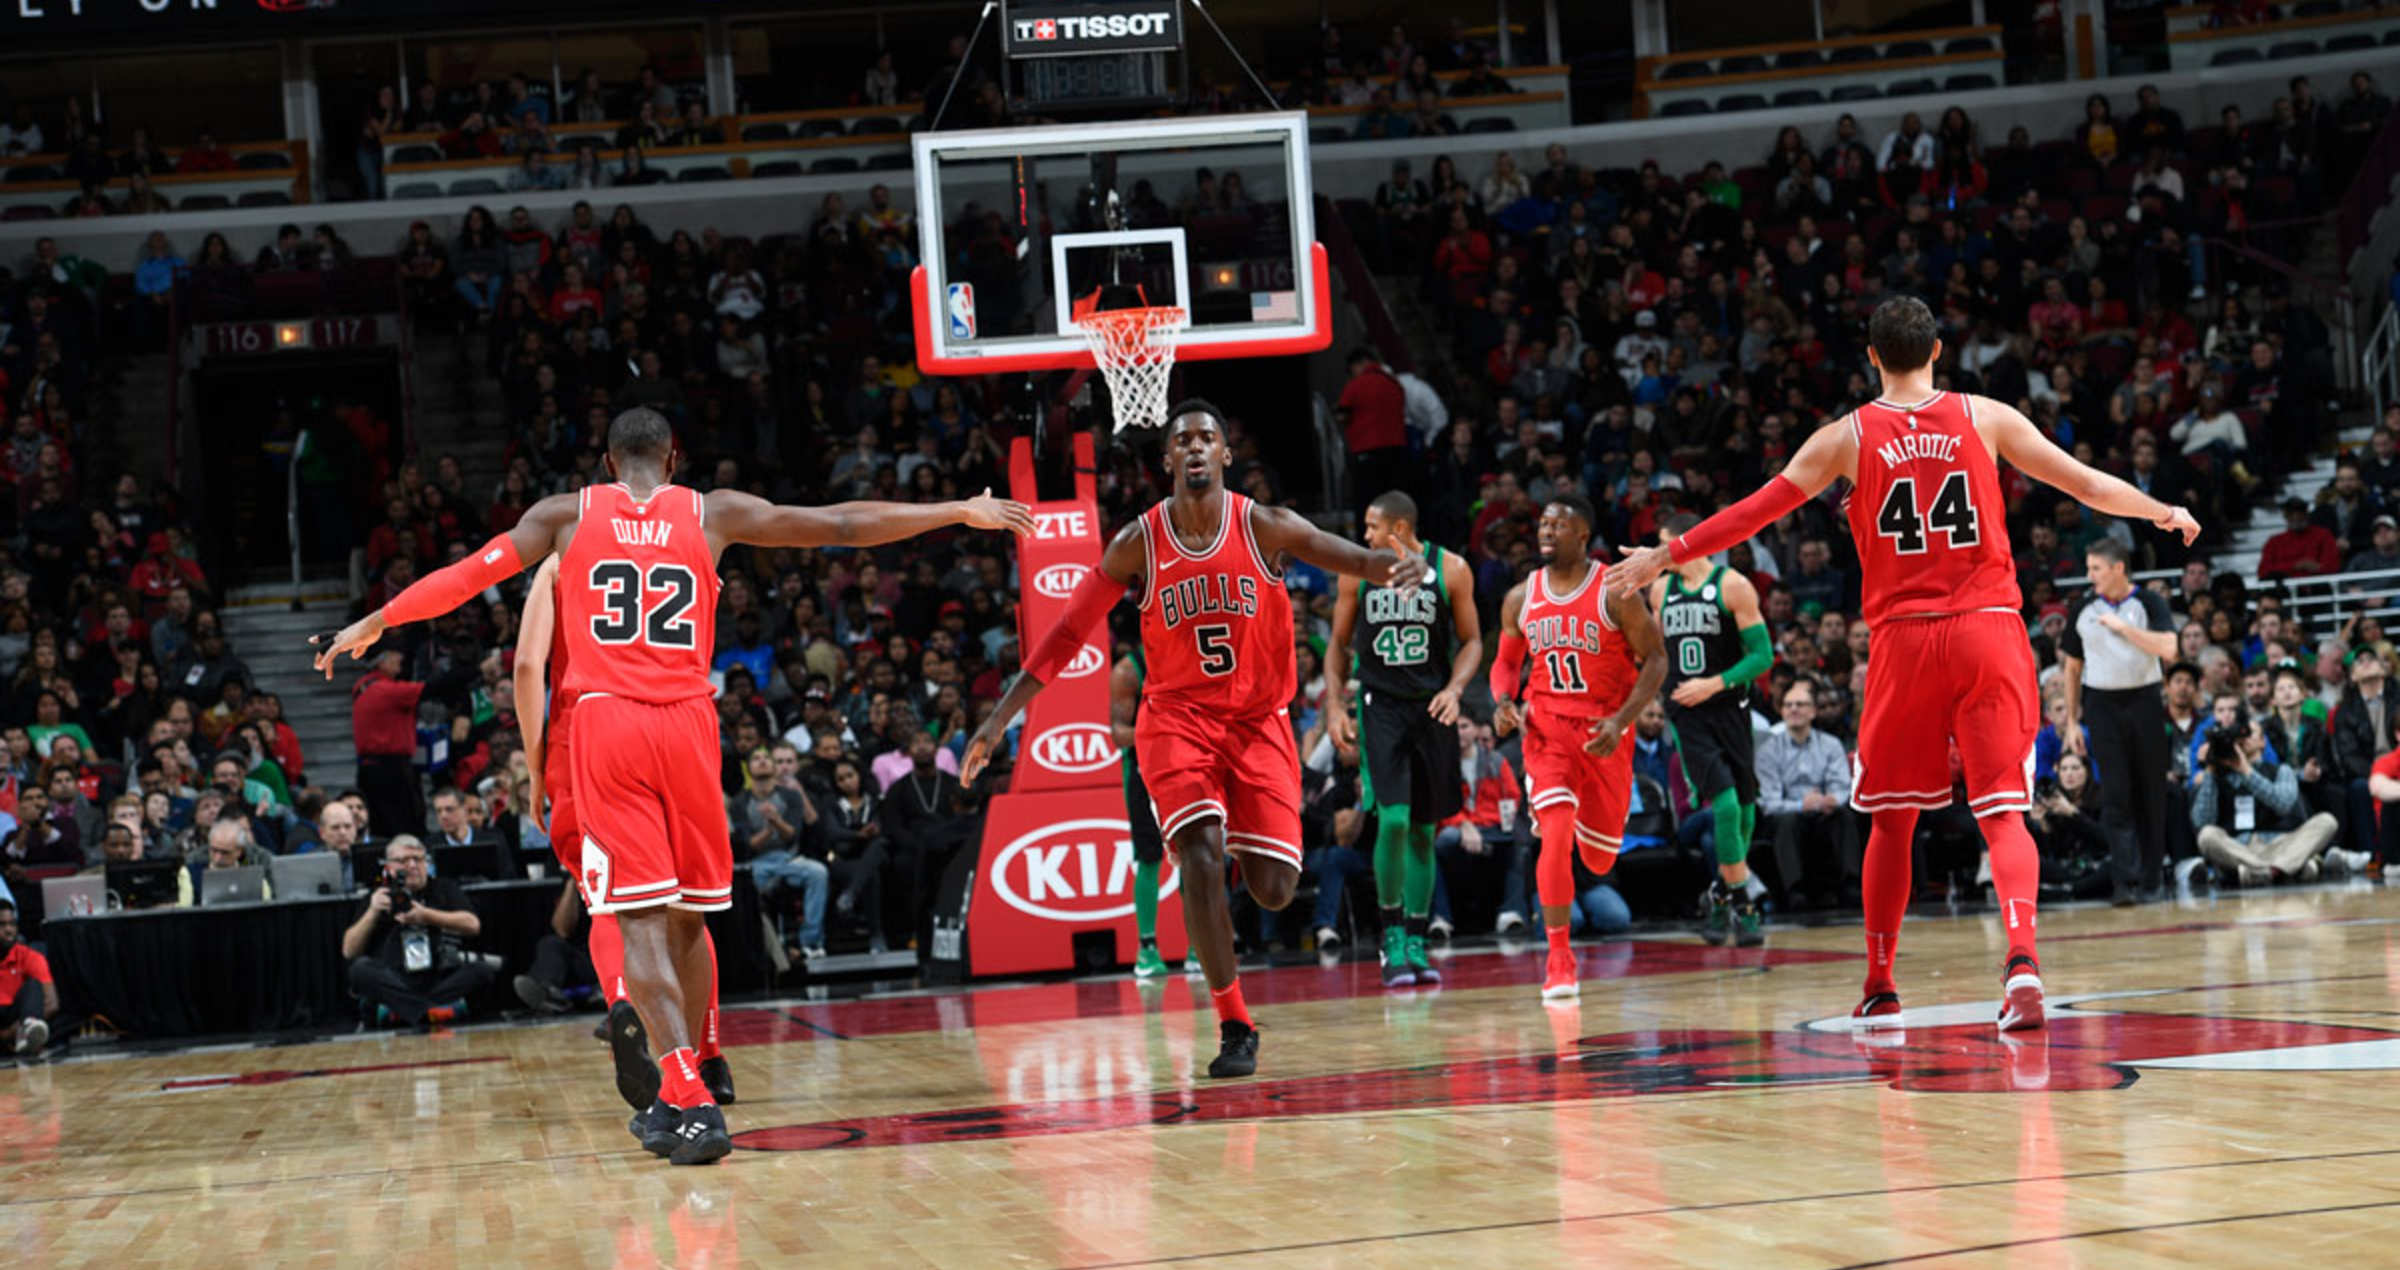 The Bulls giving each other props after a bucket against the Boston Celtics, December 11, 2017 at the United Center, Chicago, Illinois.